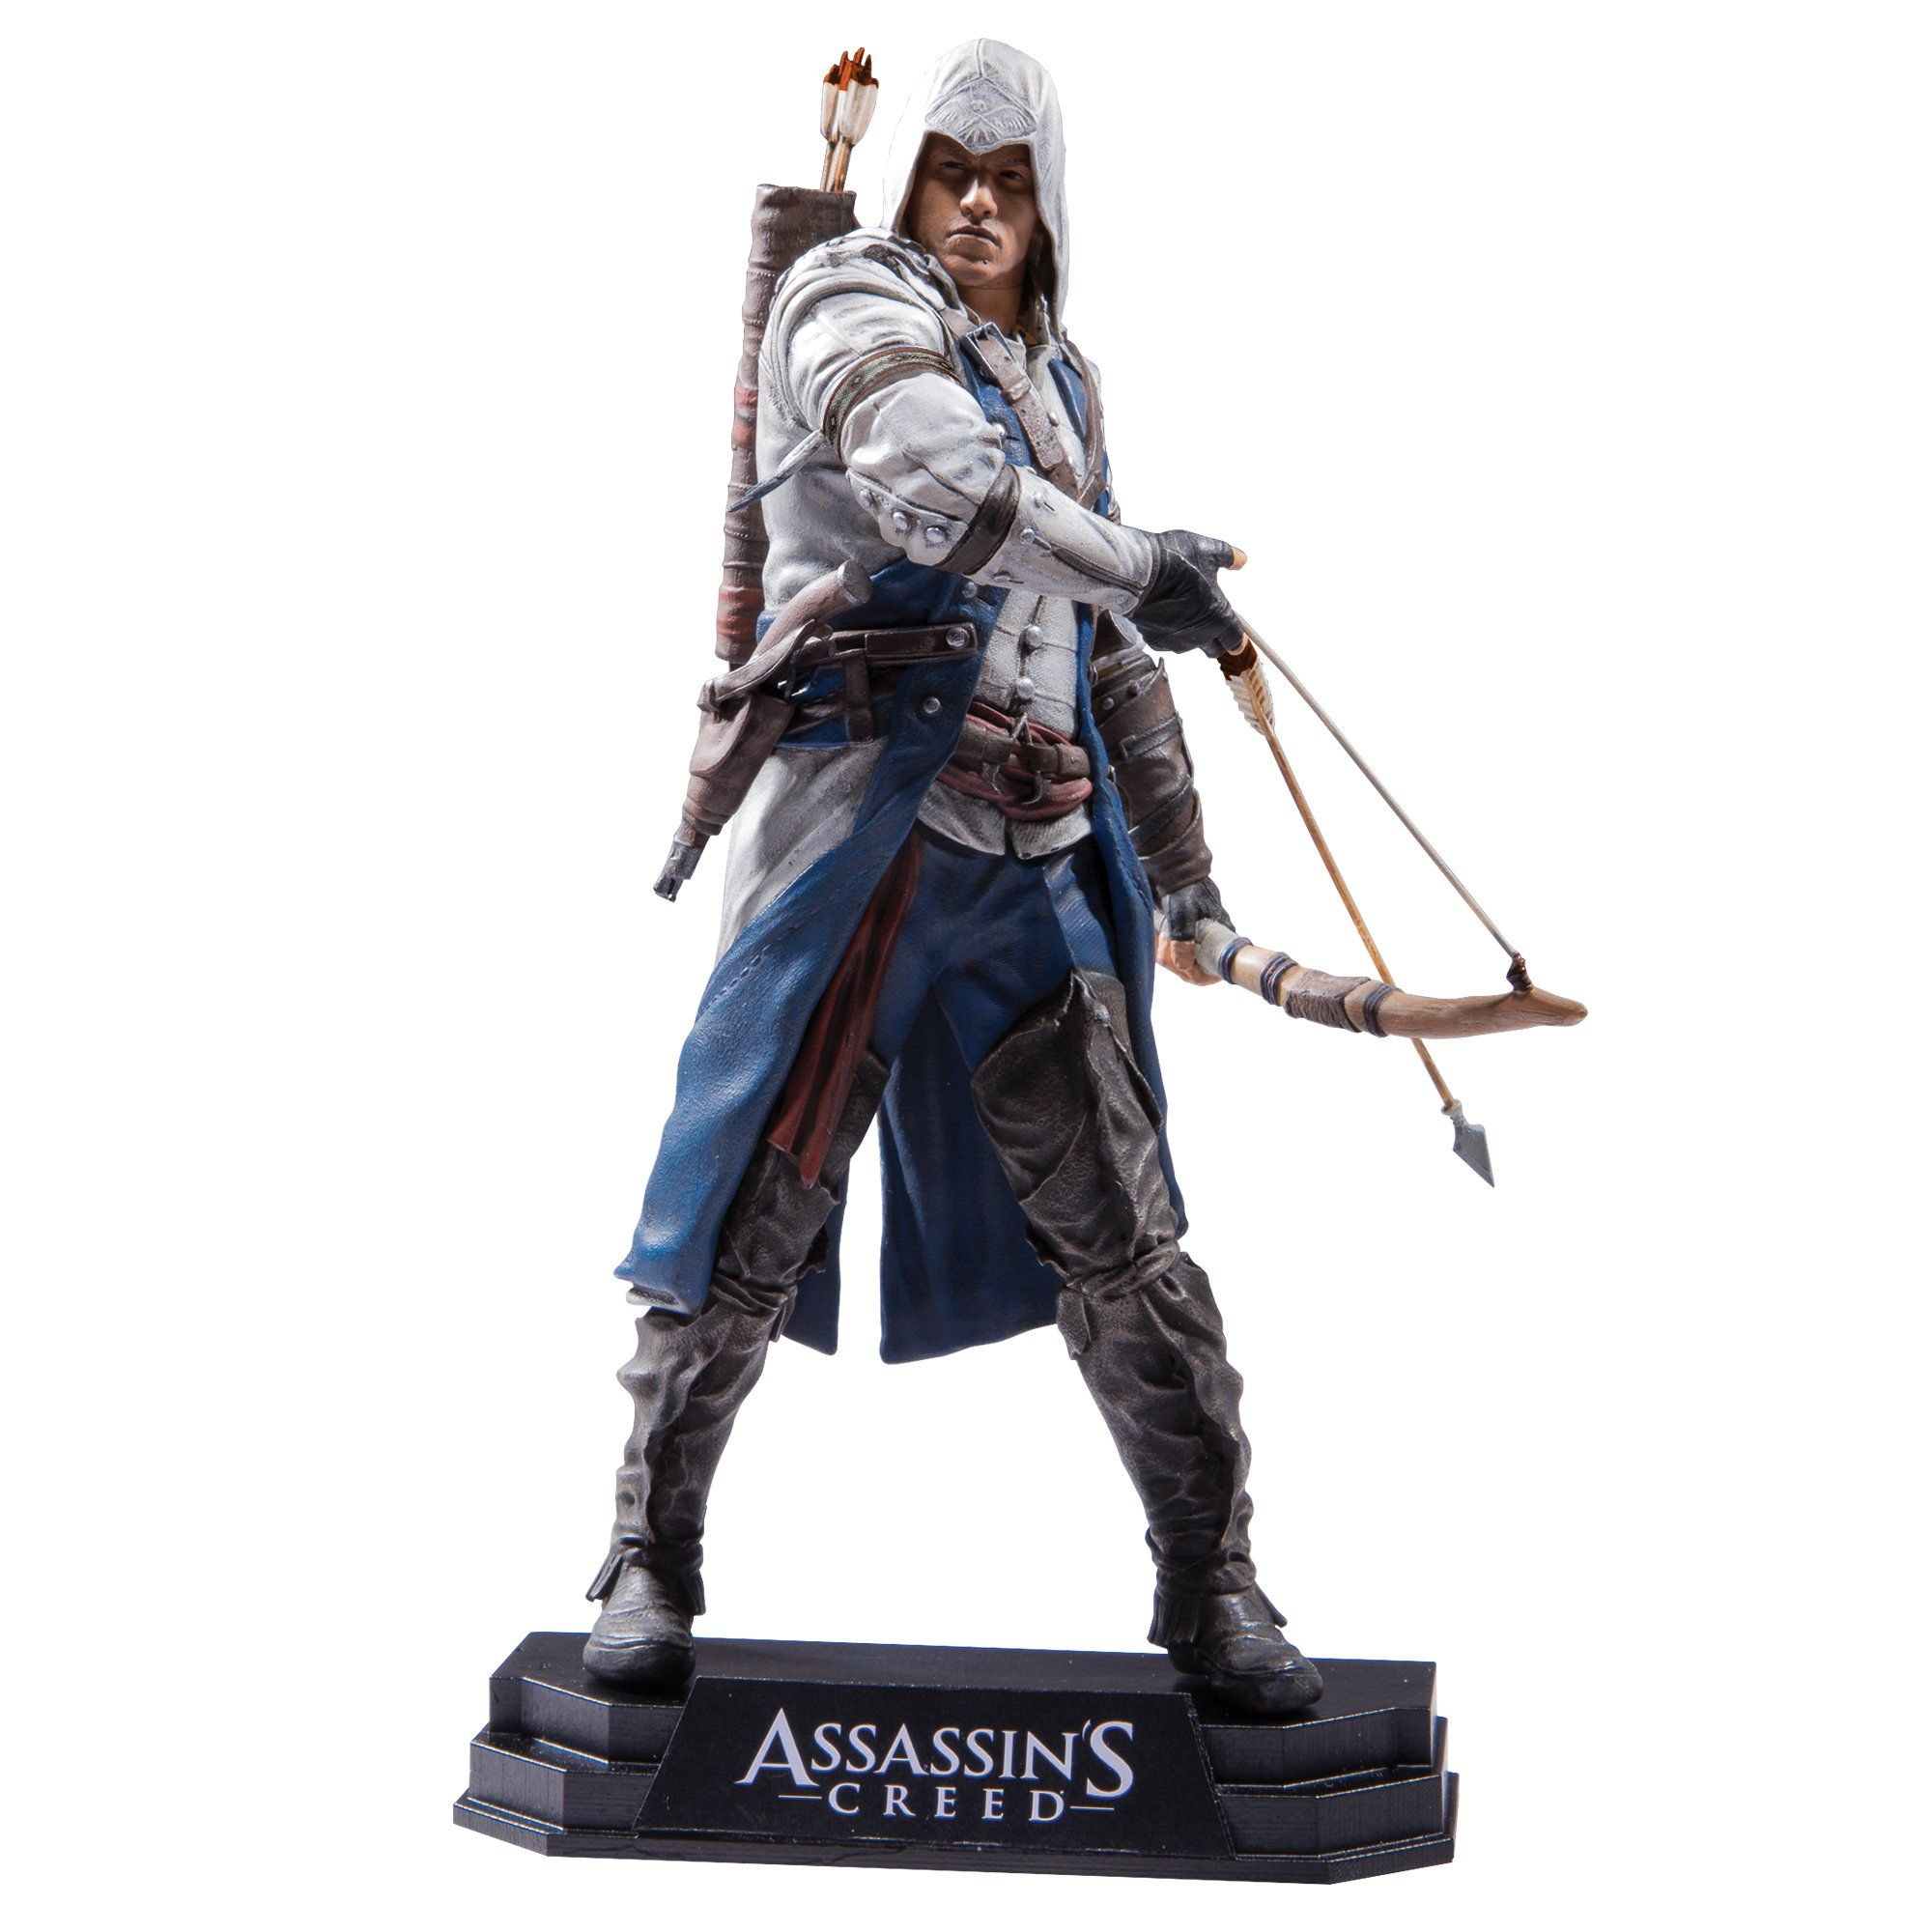 Assassin Creed Series 5 Connor Revolution Action Figure MCFARLANE TOYS